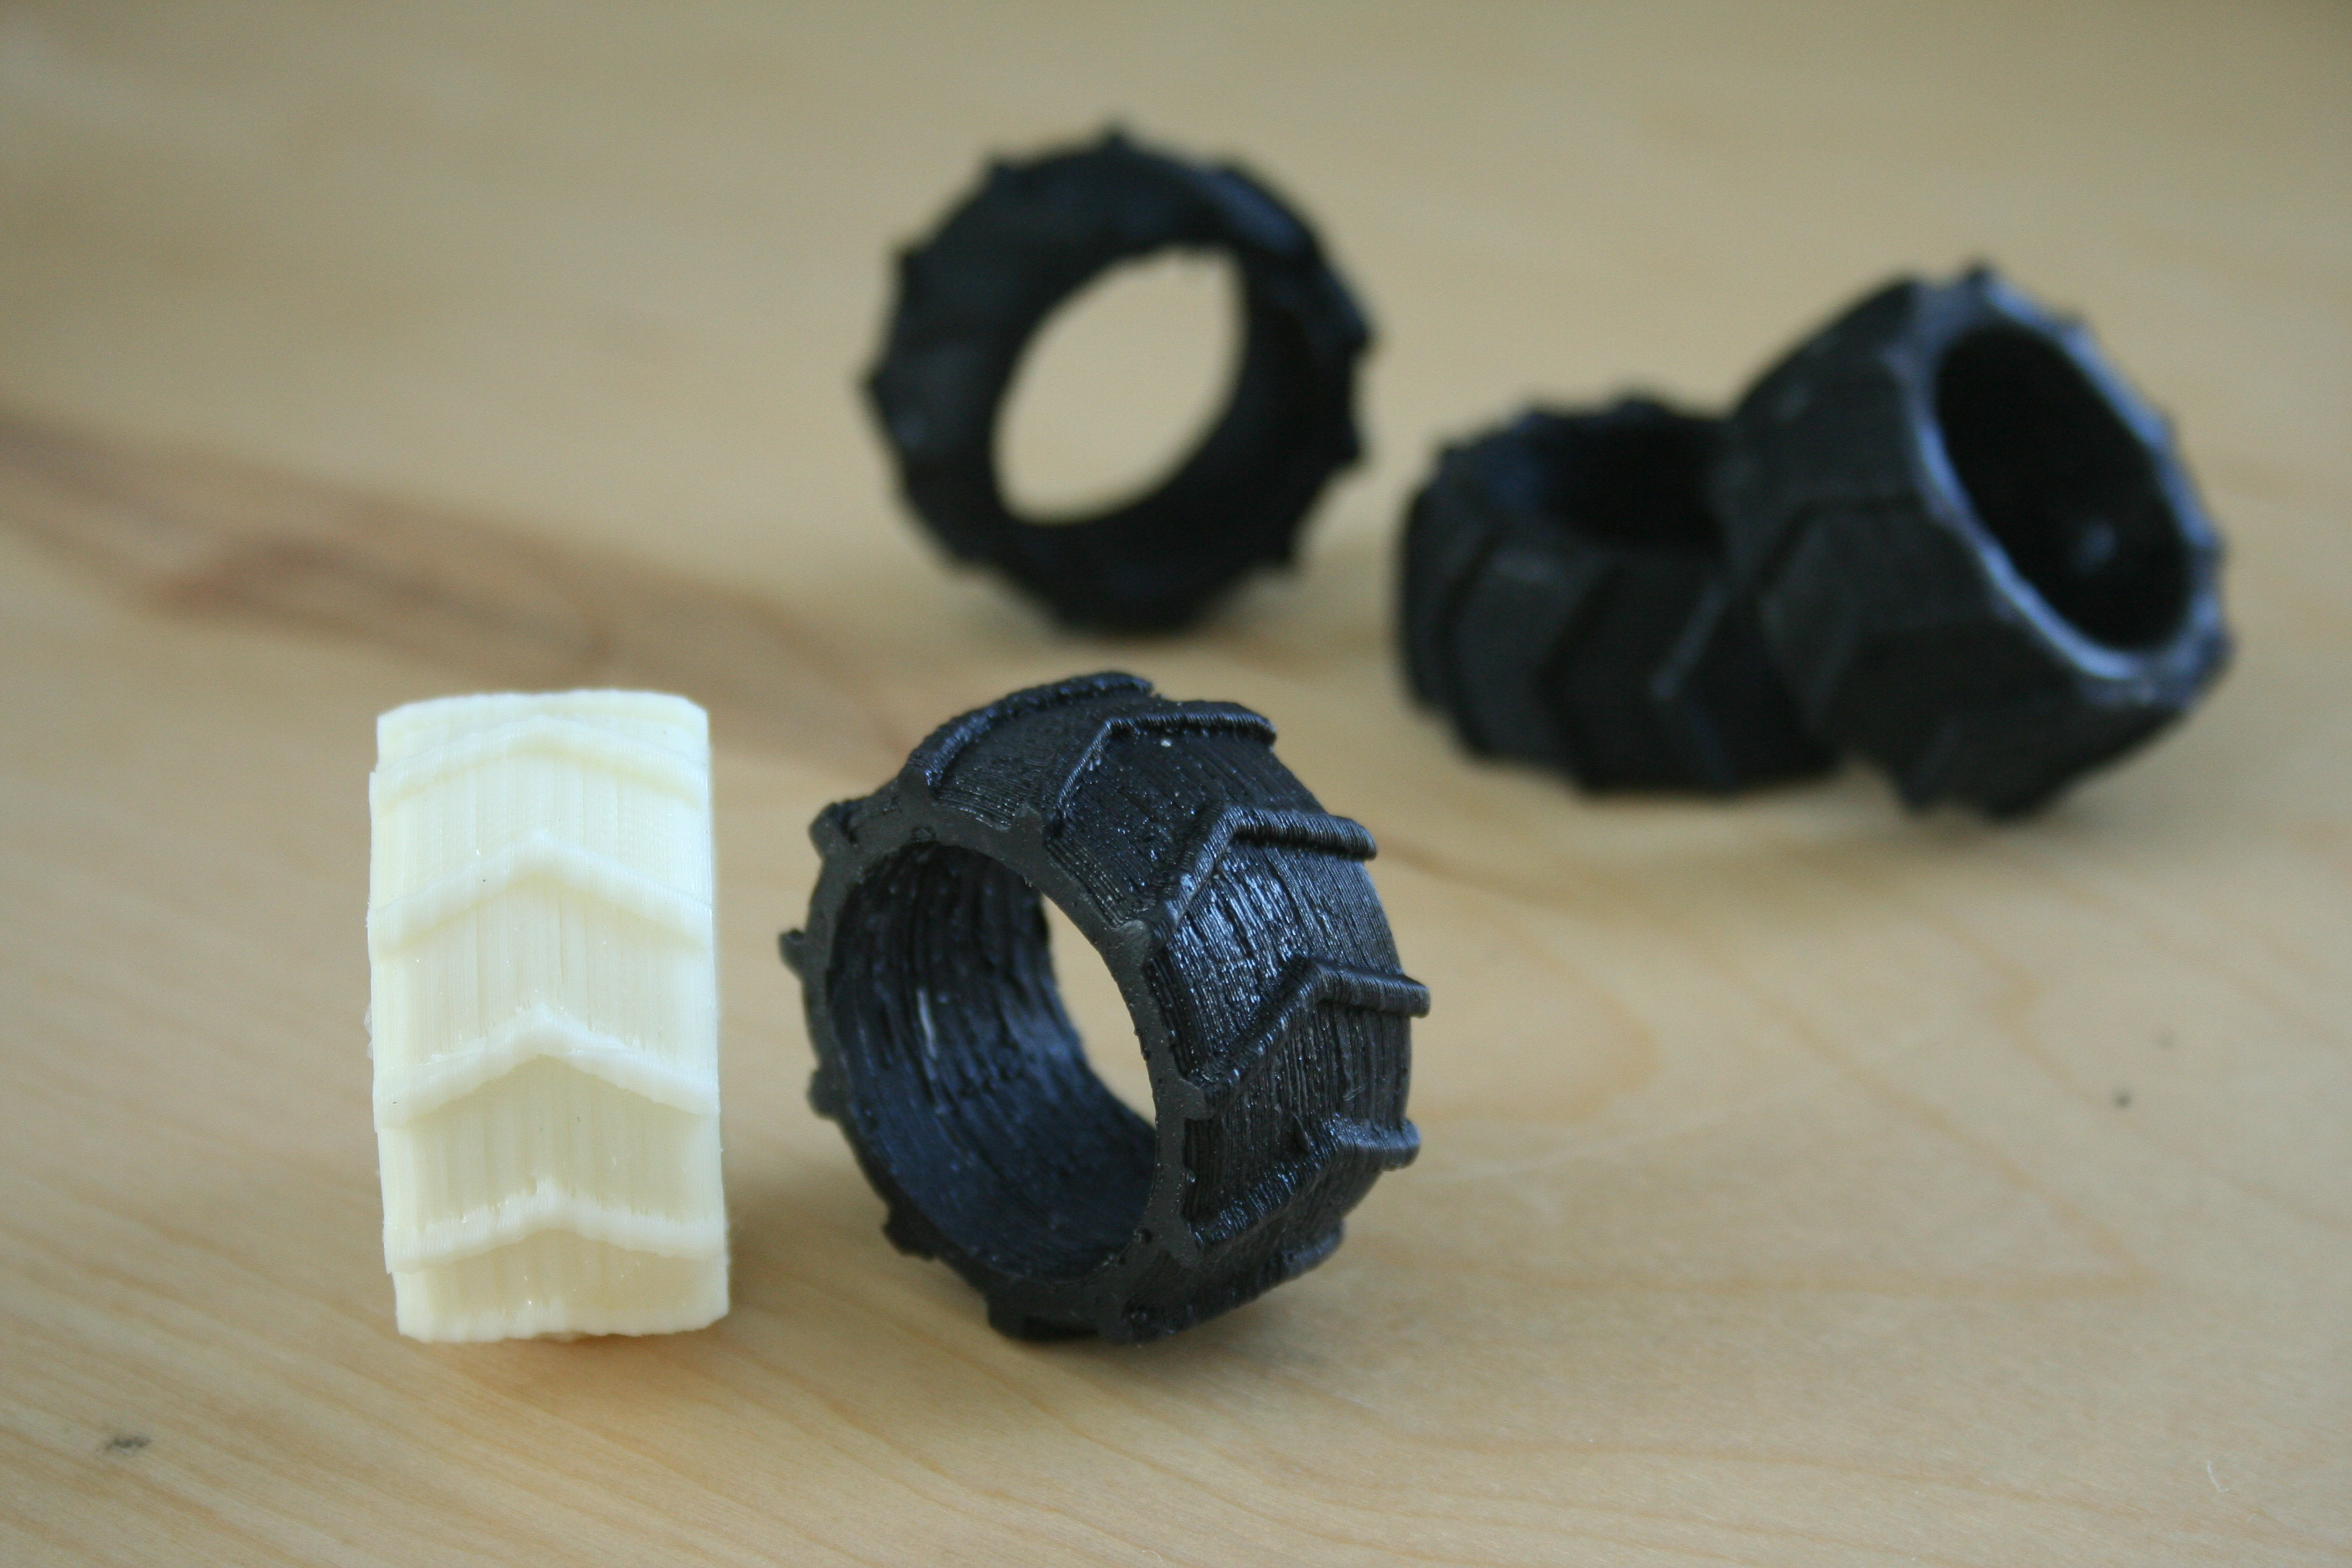 Rapid Prototyping - 3-D Printing to Make Masters